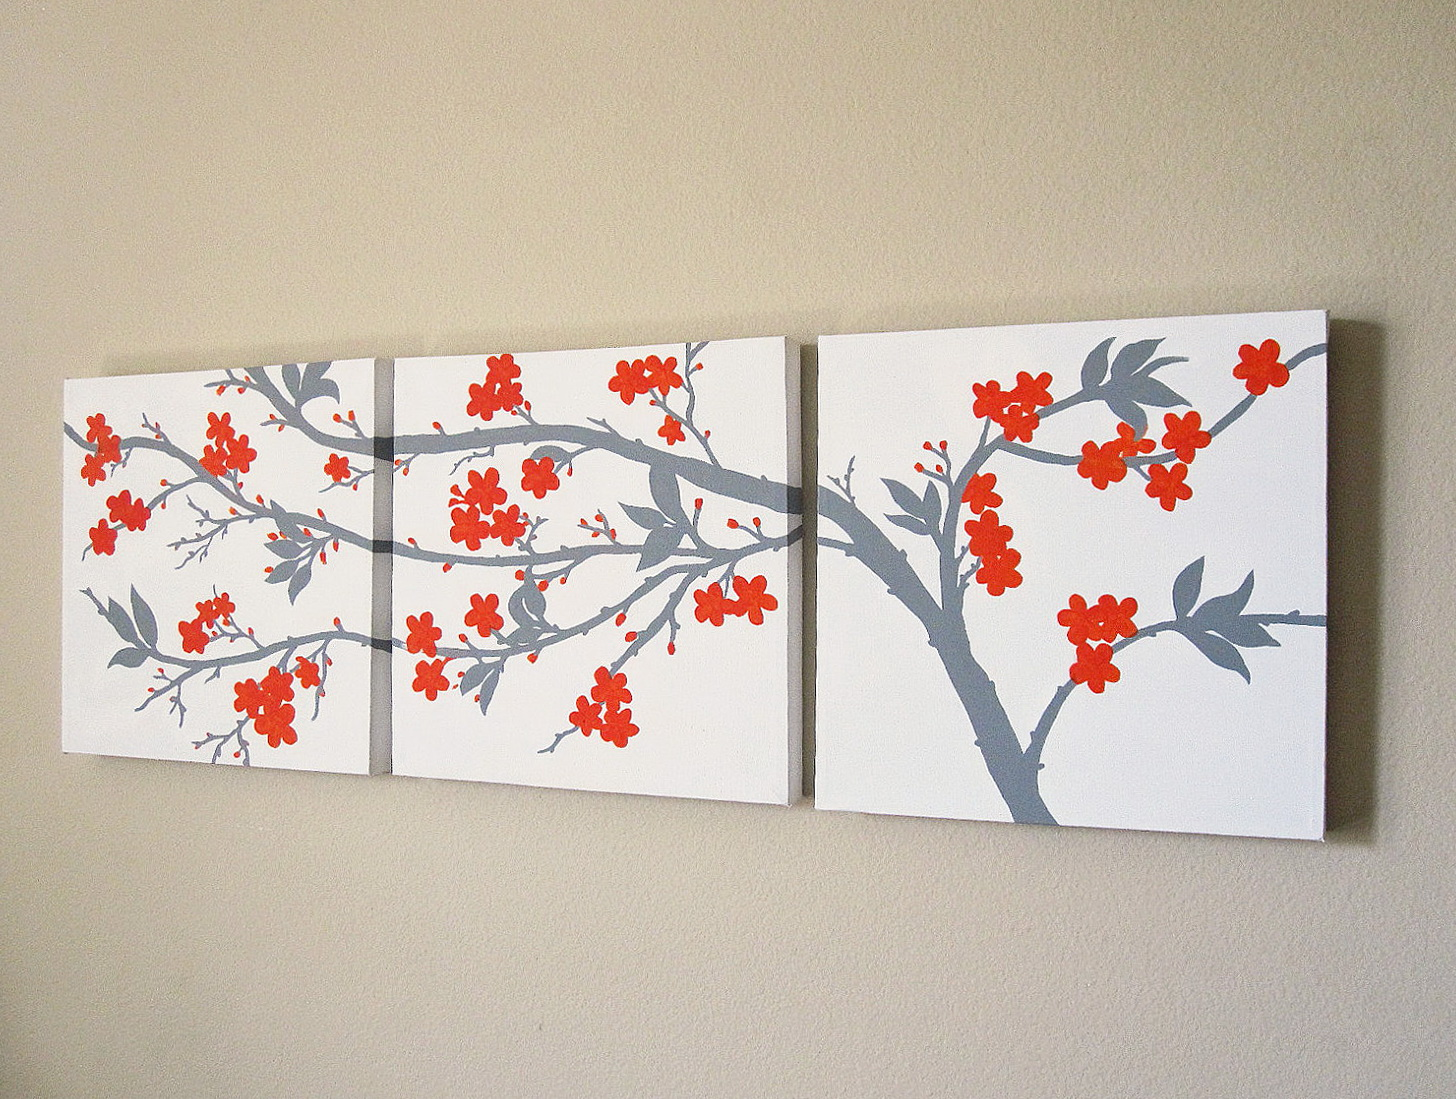 3 Panel Wall Art Canvas